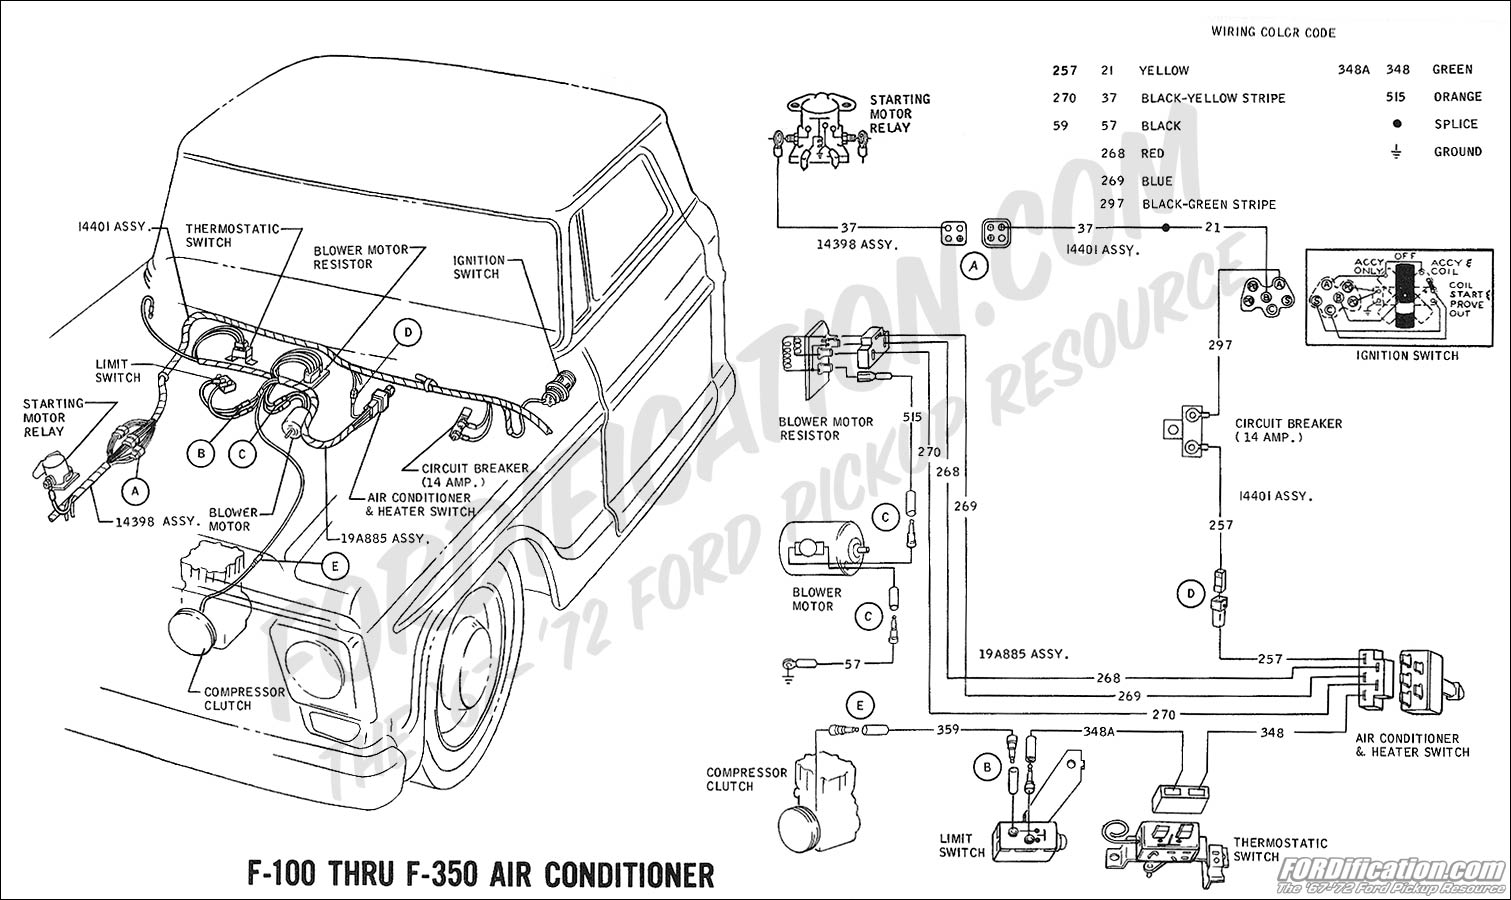 1wskx Fuse Box Diagram 2001 Beetle Issue additionally Volkswagen Vento 1 9 1992 Specs And Images furthermore 221450506657449789 furthermore Vw Clutch Master Cylinder Diagram also Vw Thing Engine Diagram. on 1973 vw beetle wiring diagram